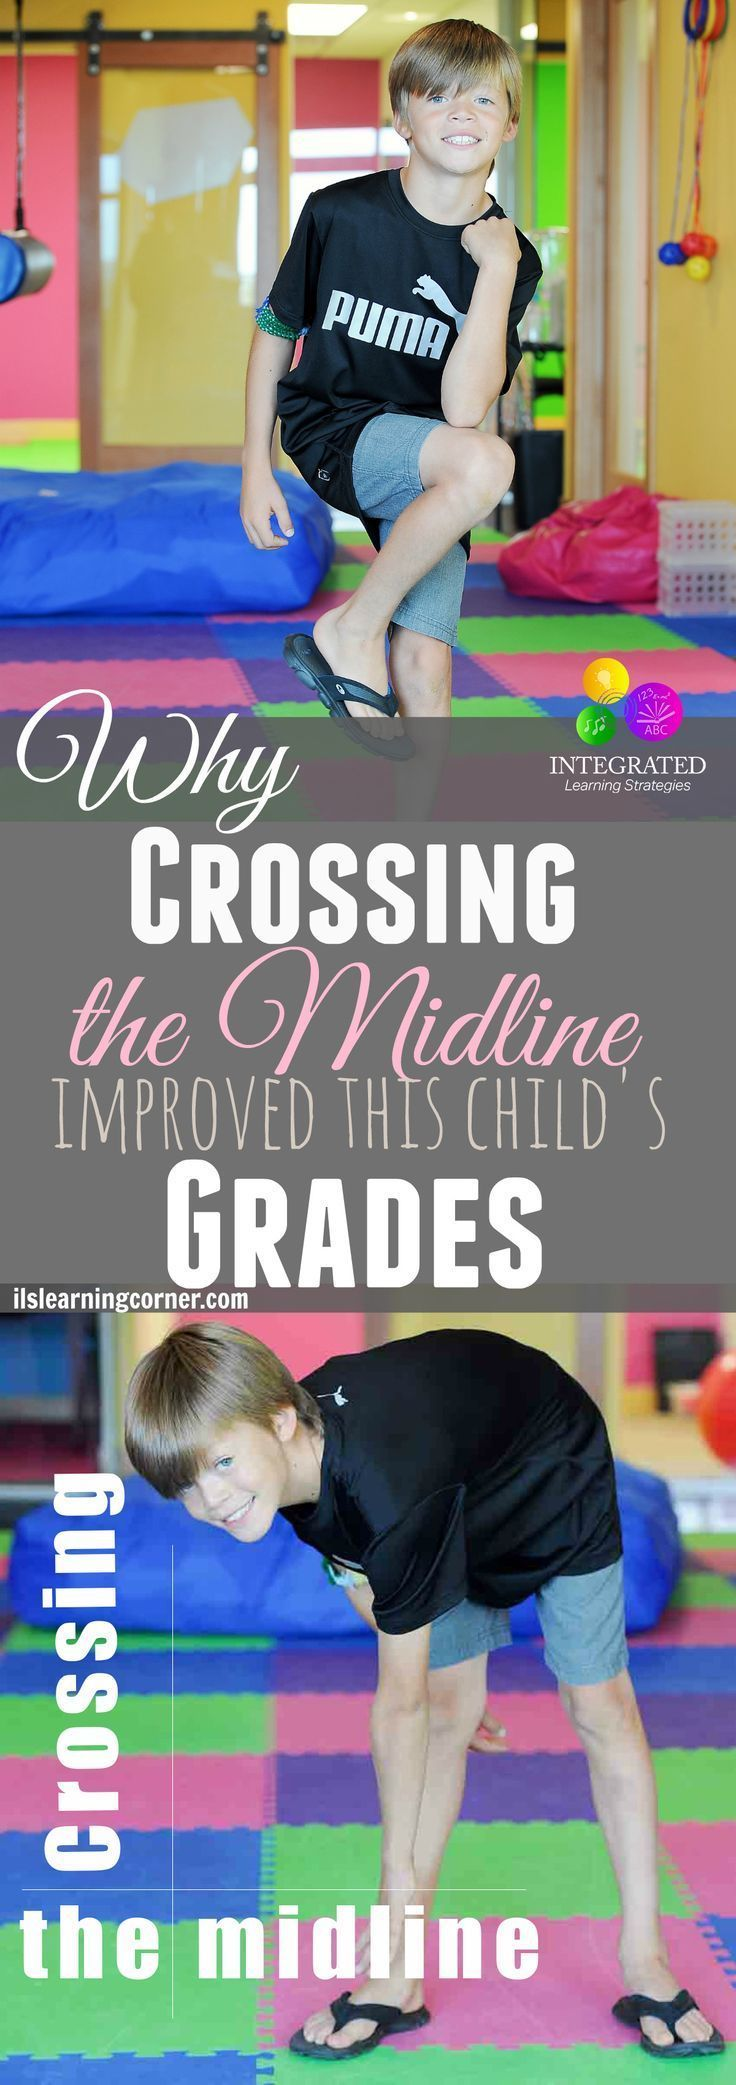 Yes!!!  Why Crossing the Midline Activities Helped this Child Listen to his Teacher | ilslearningcorner.com